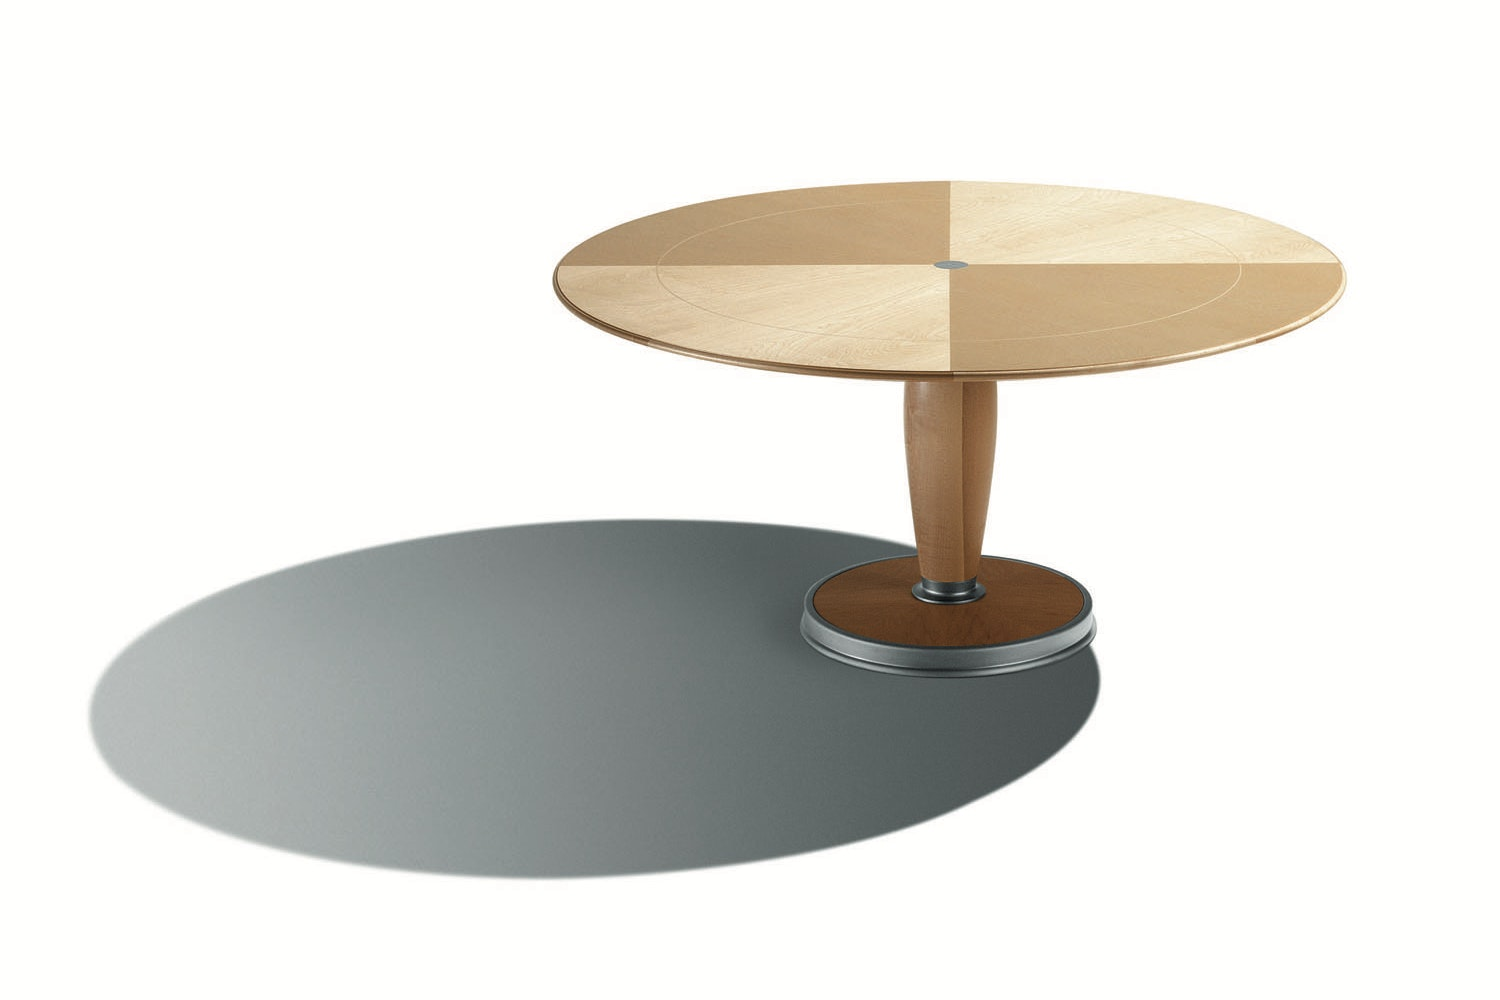 Isa Table by Chi Wing Lo for Giorgetti